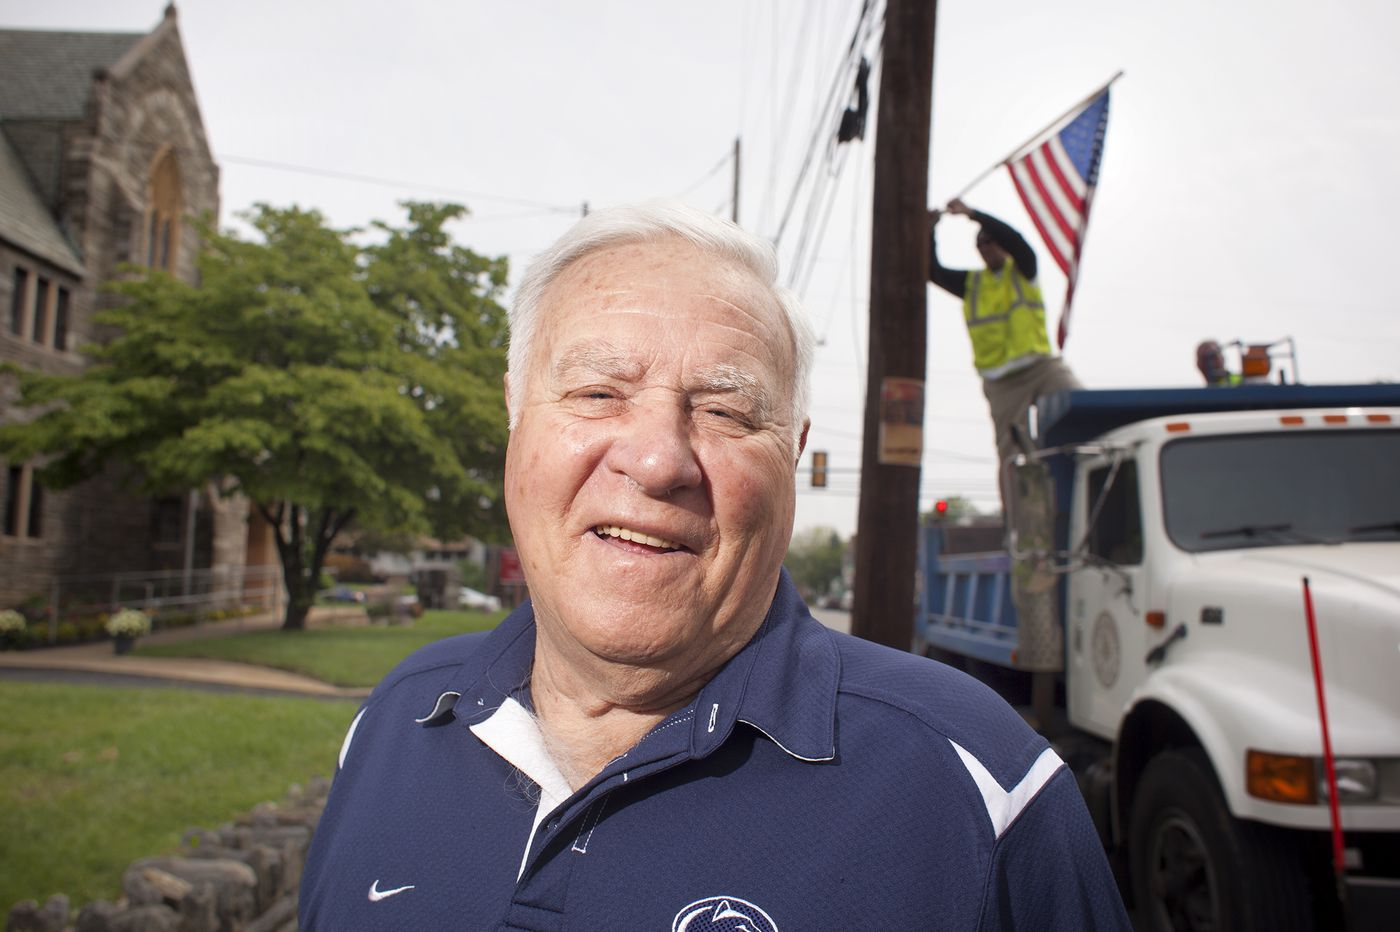 Frank C. Kelly, 84, Collingdale's mayor and favorite son